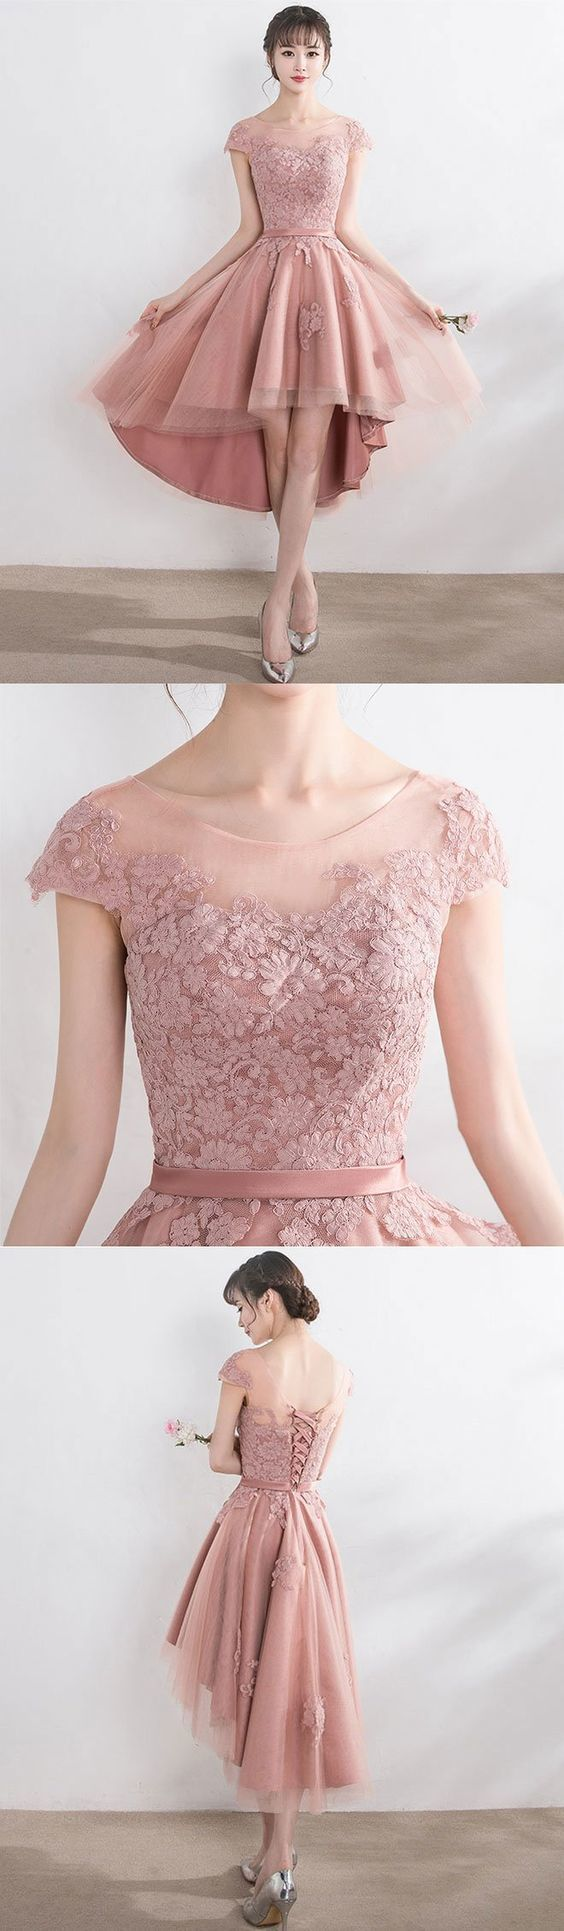 Cut lace tulle short prom dress high low evening dress in